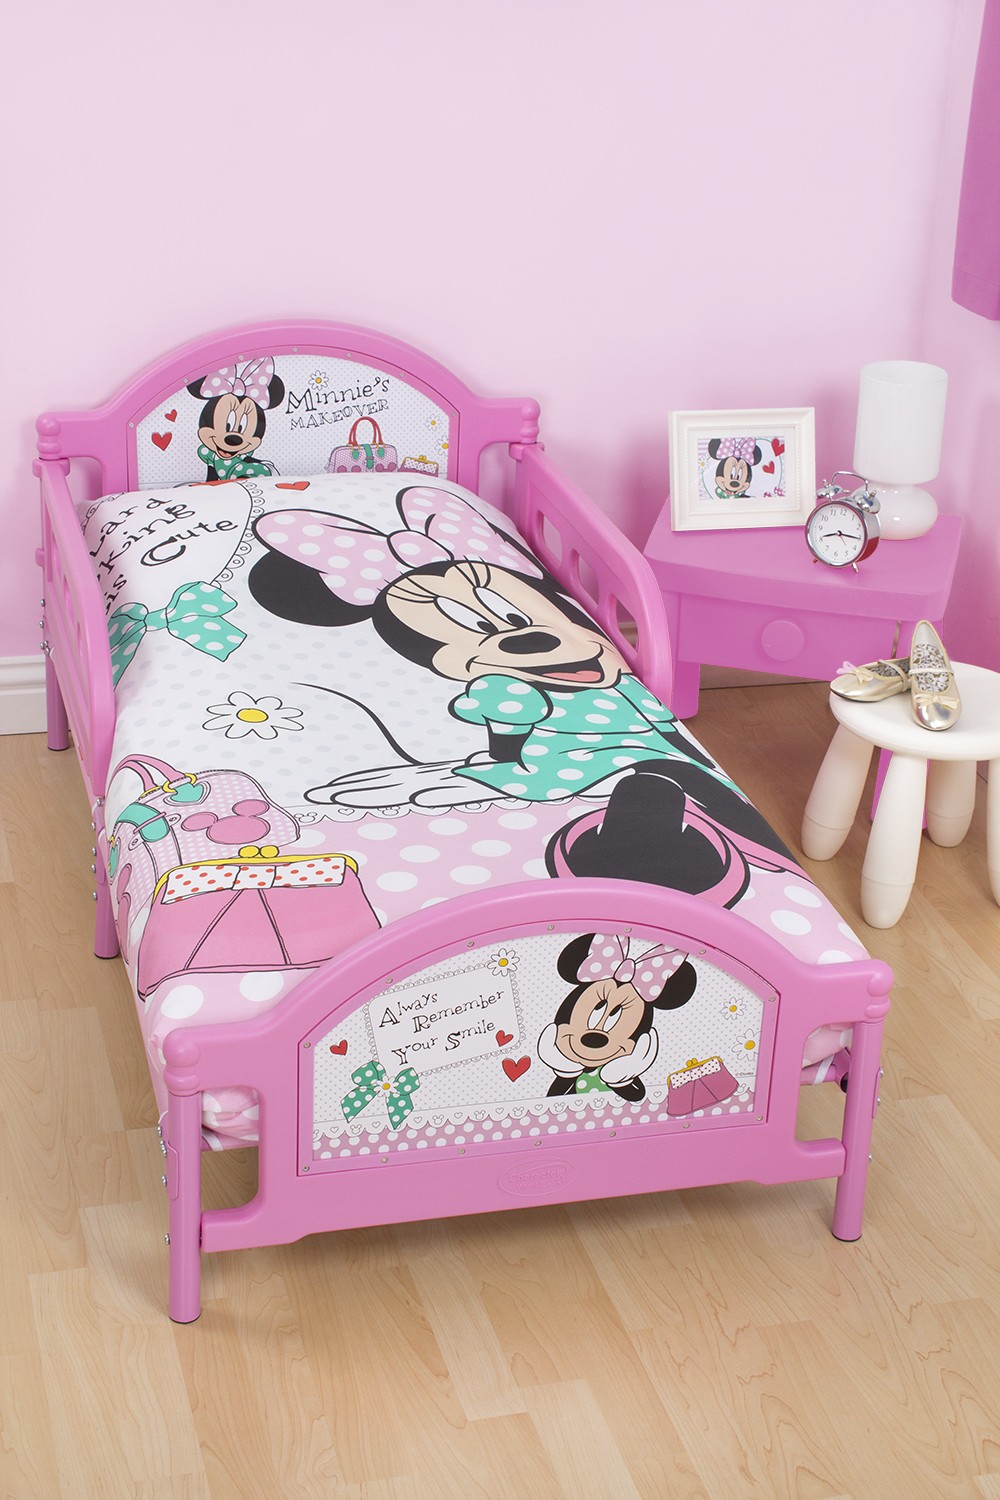 Disney toddler duvet cover